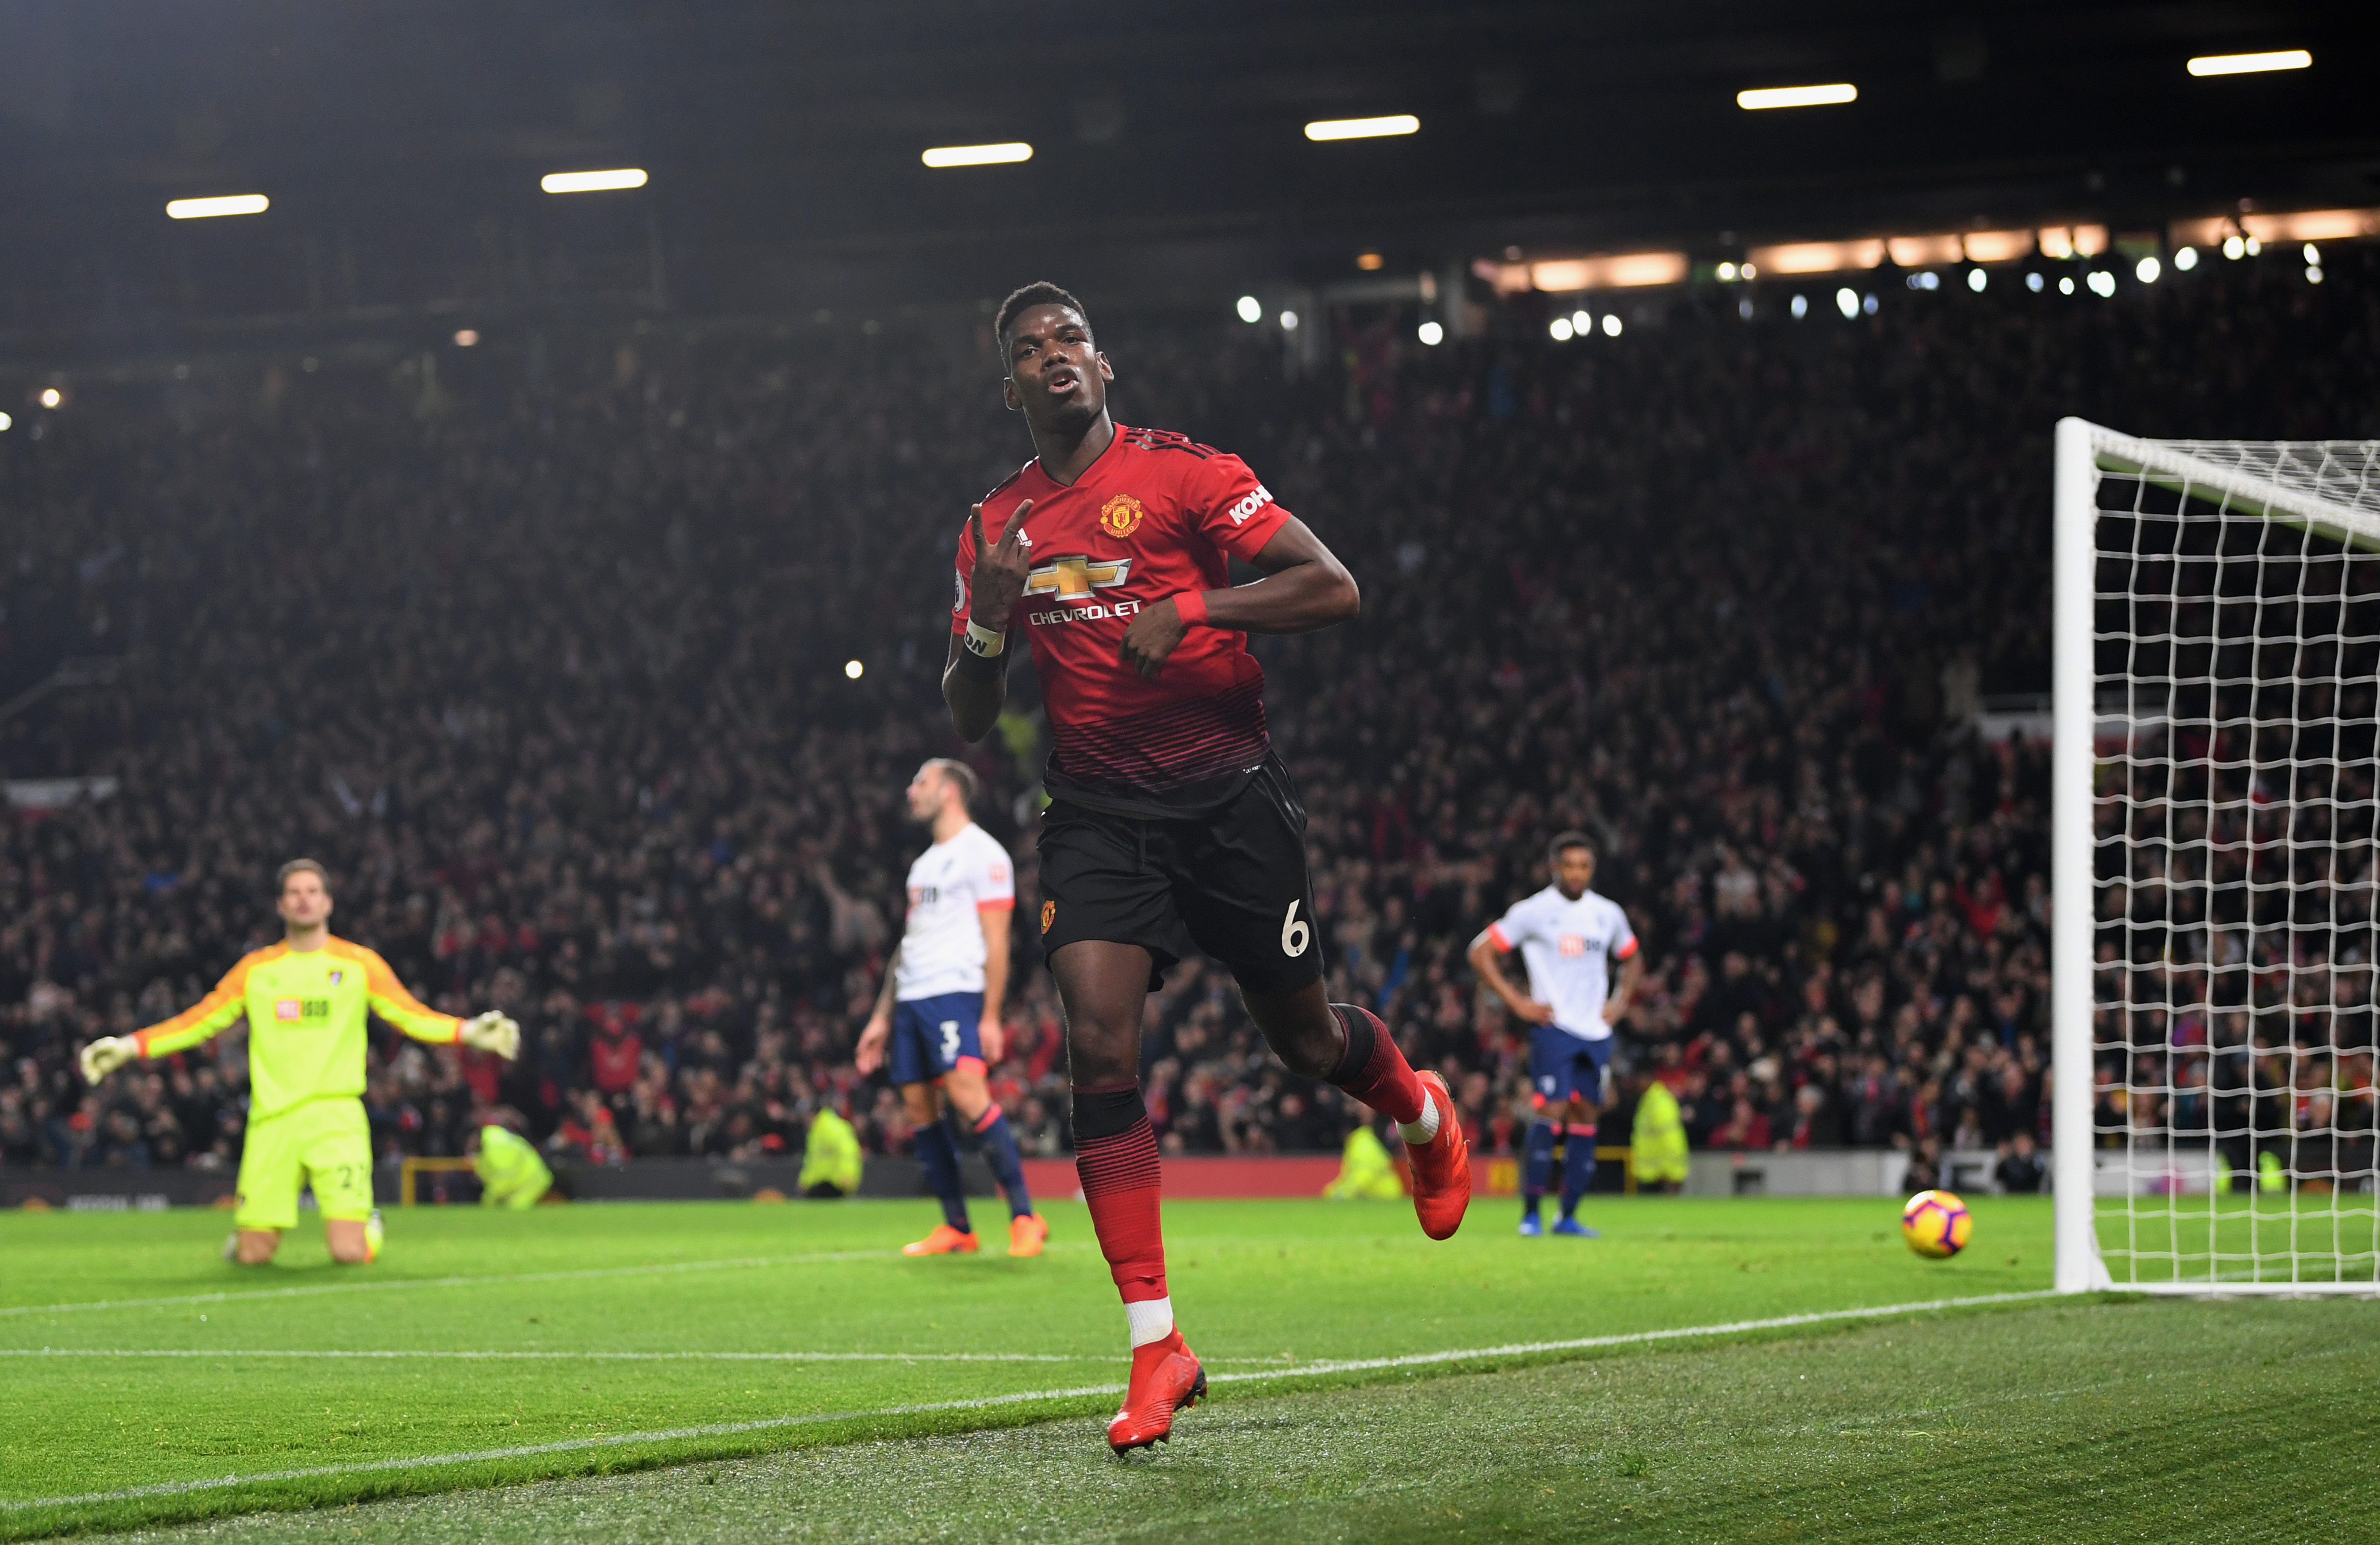 Paul Pogba should be a serious candidate for PFA Player of the Year